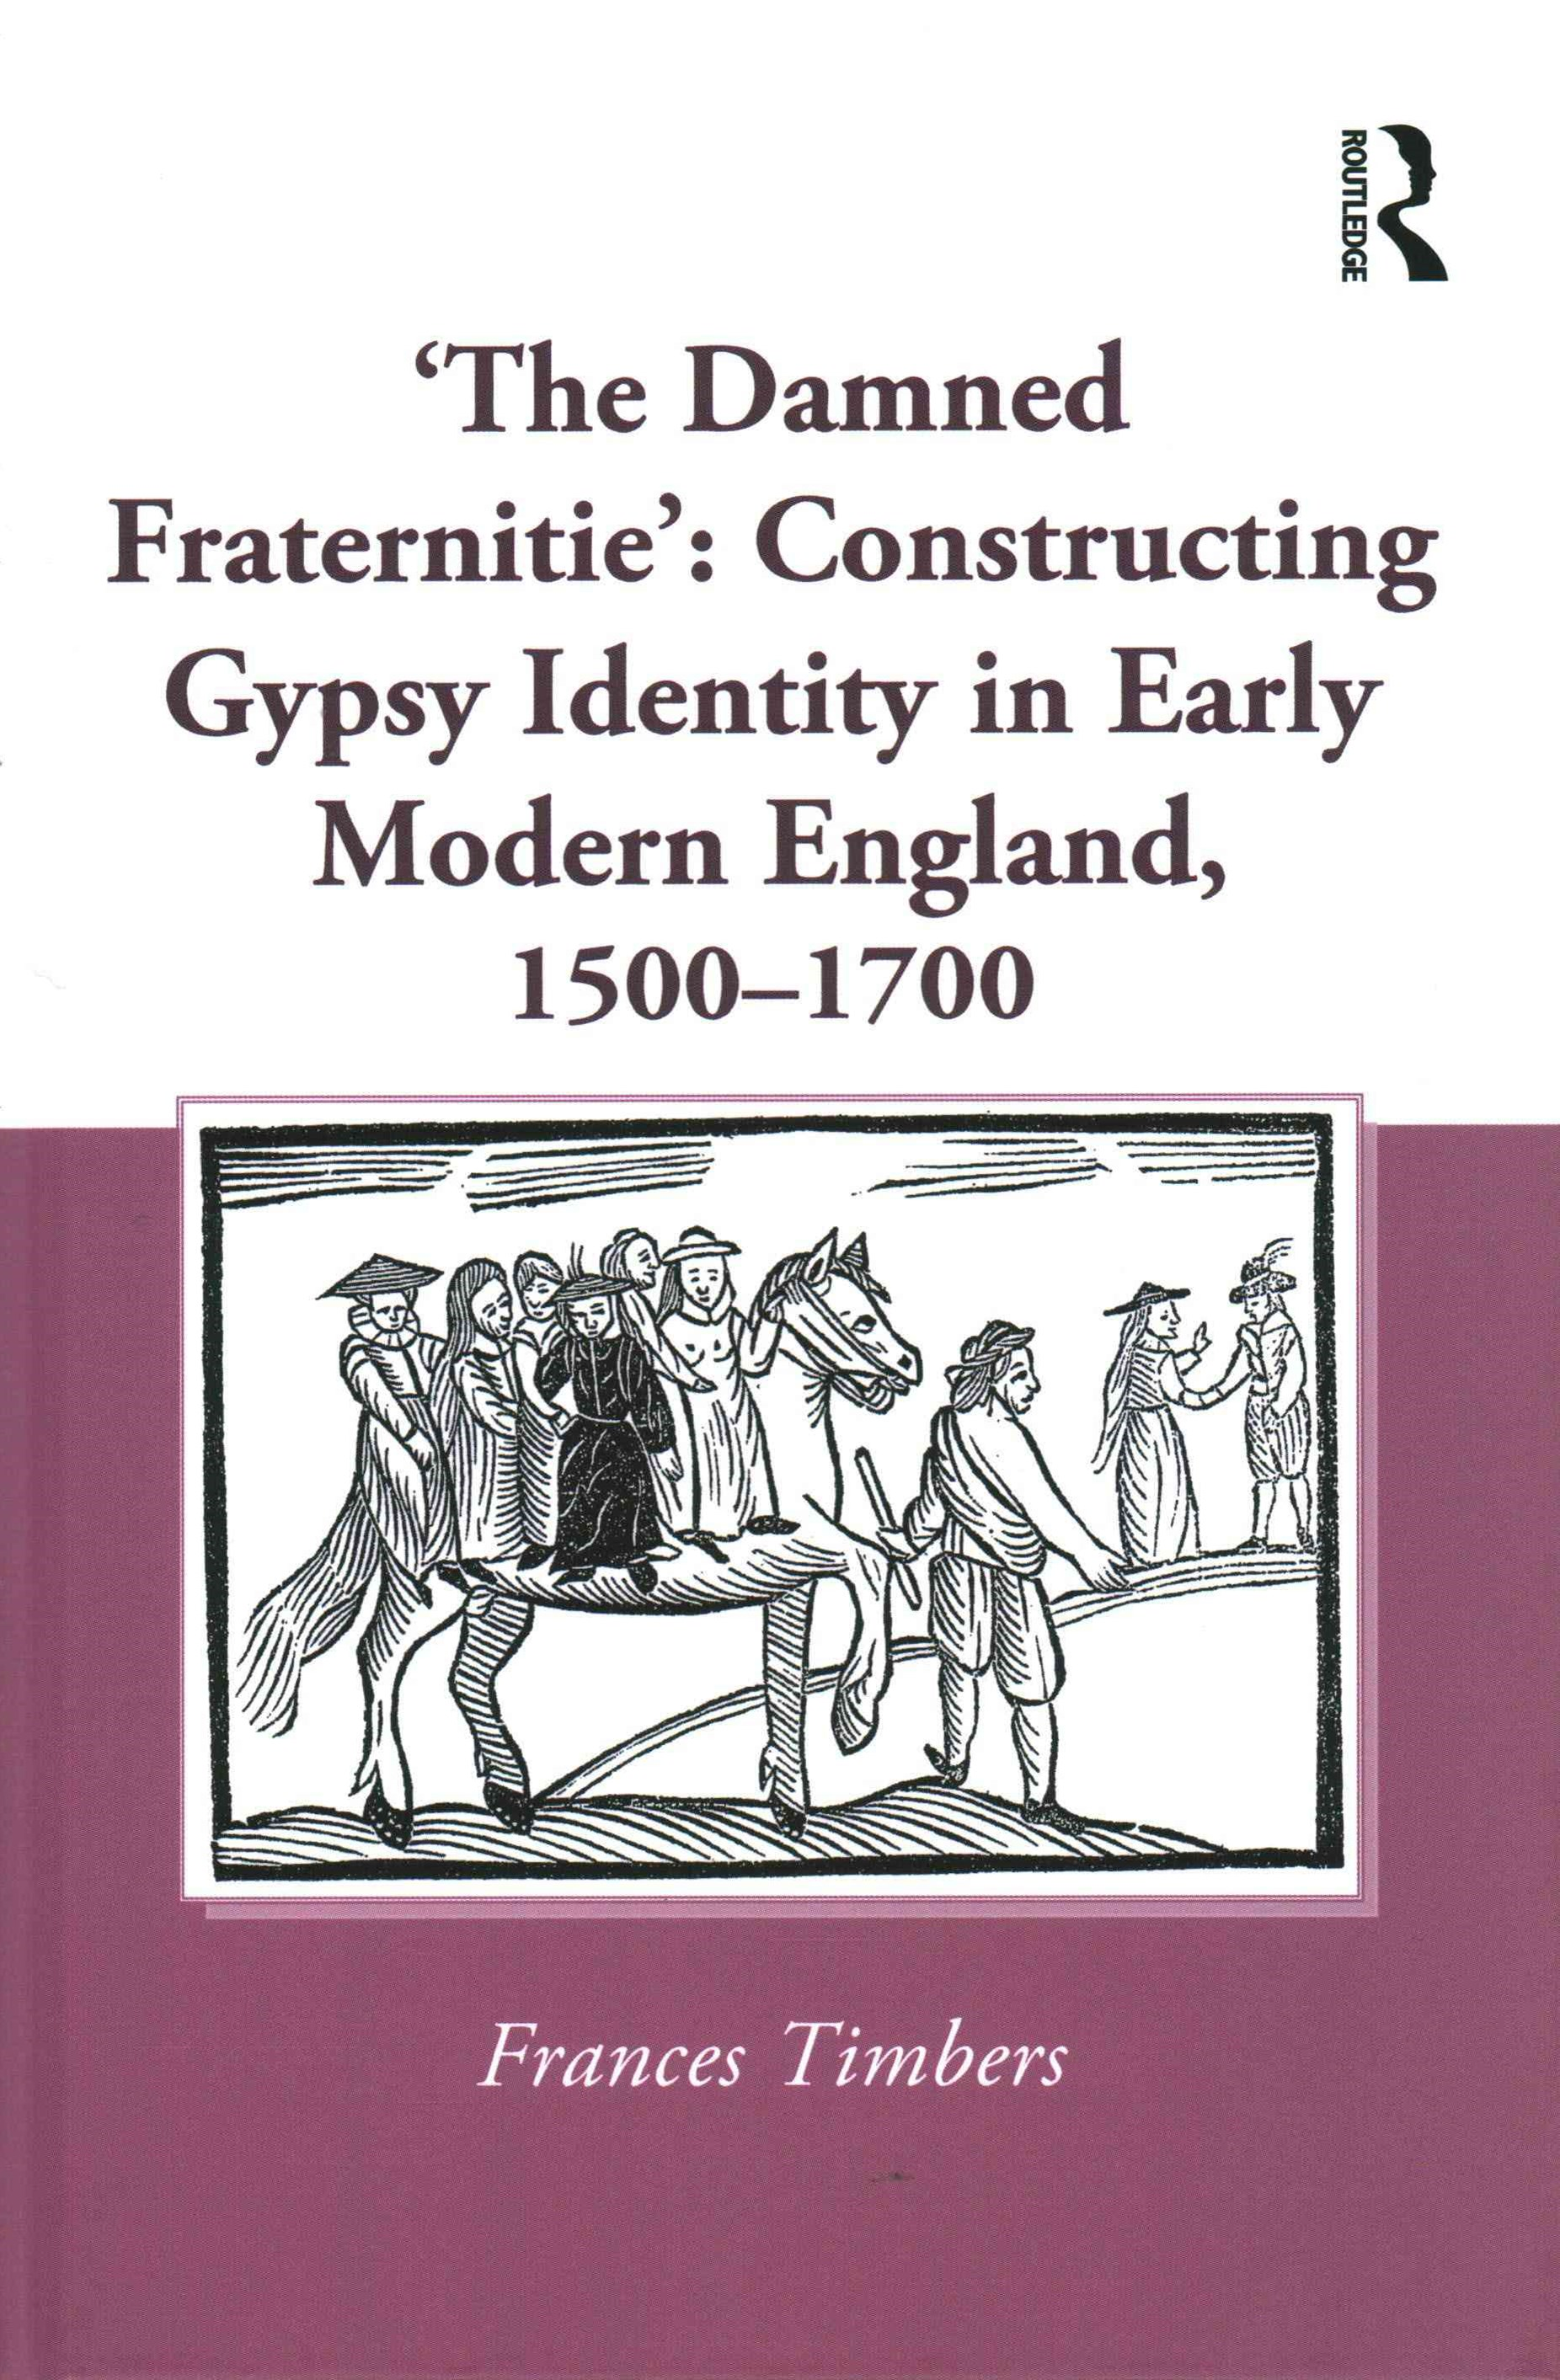 'The Damned Fraternitie': Constructing Gypsy Identity in Early Modern England, 1500-1700